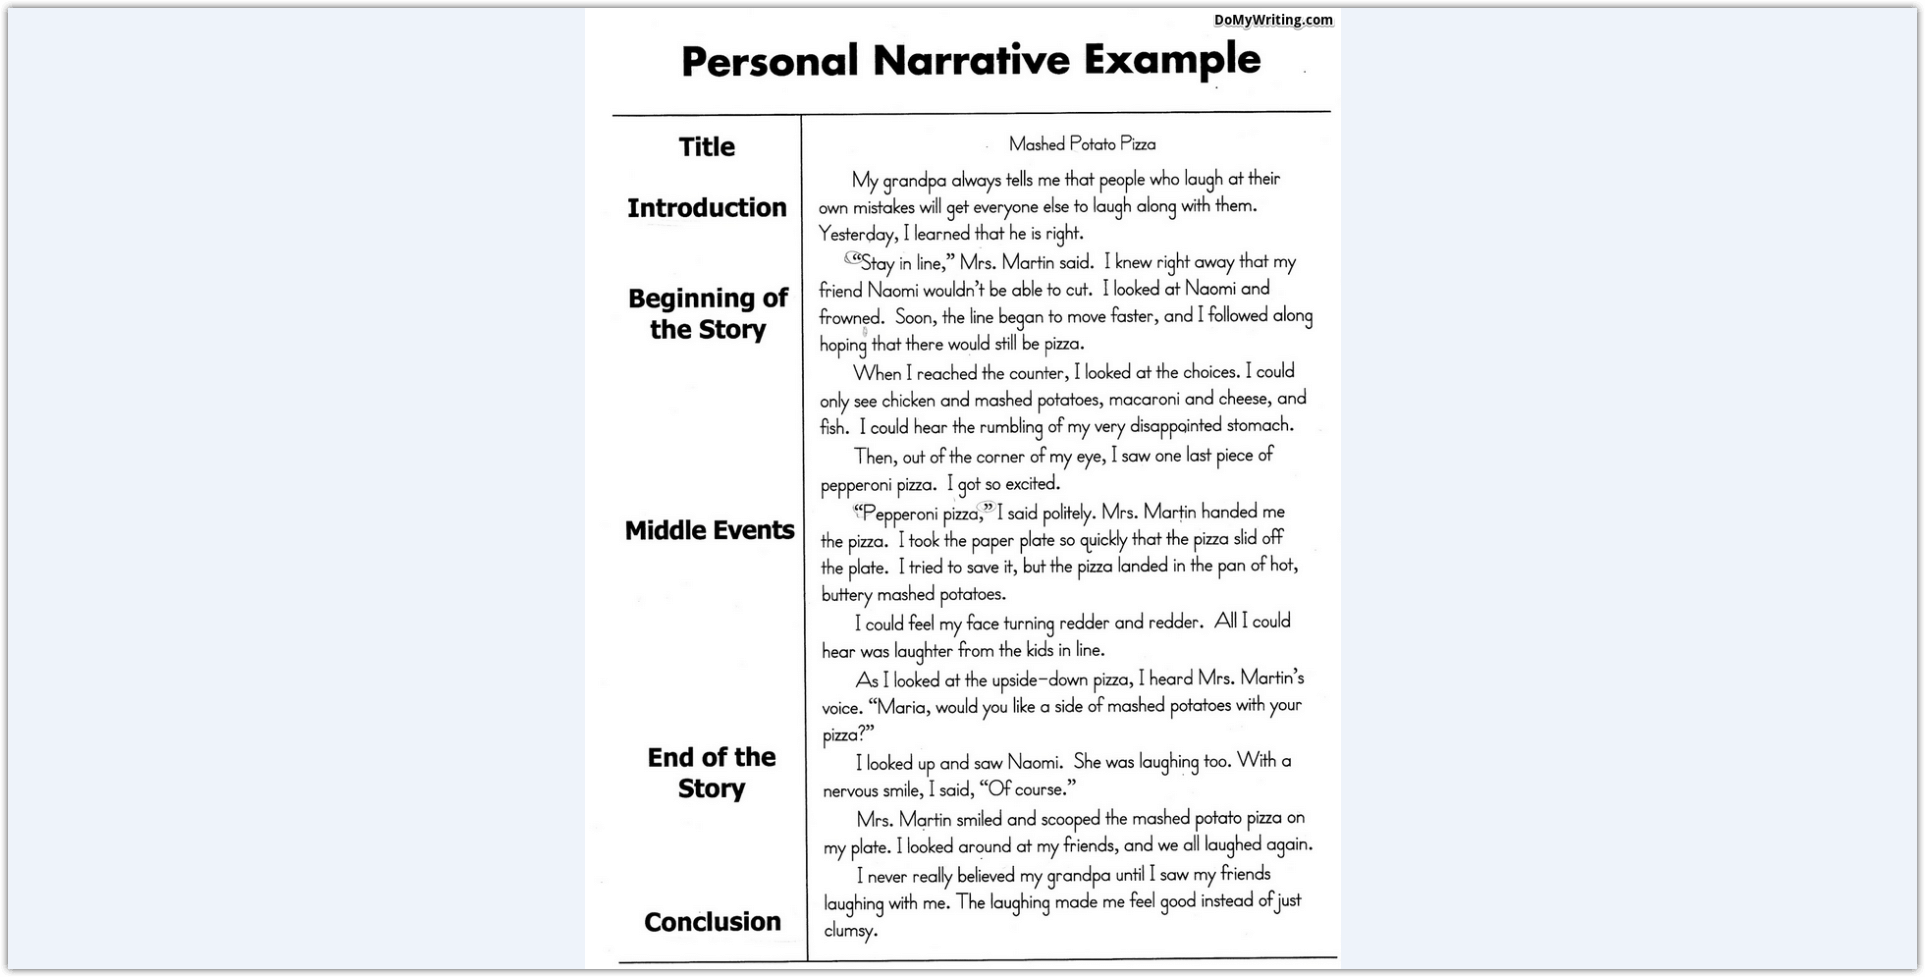 002 Narritive Essay Example Unforgettable Narrative Format Prompts Rubric Full